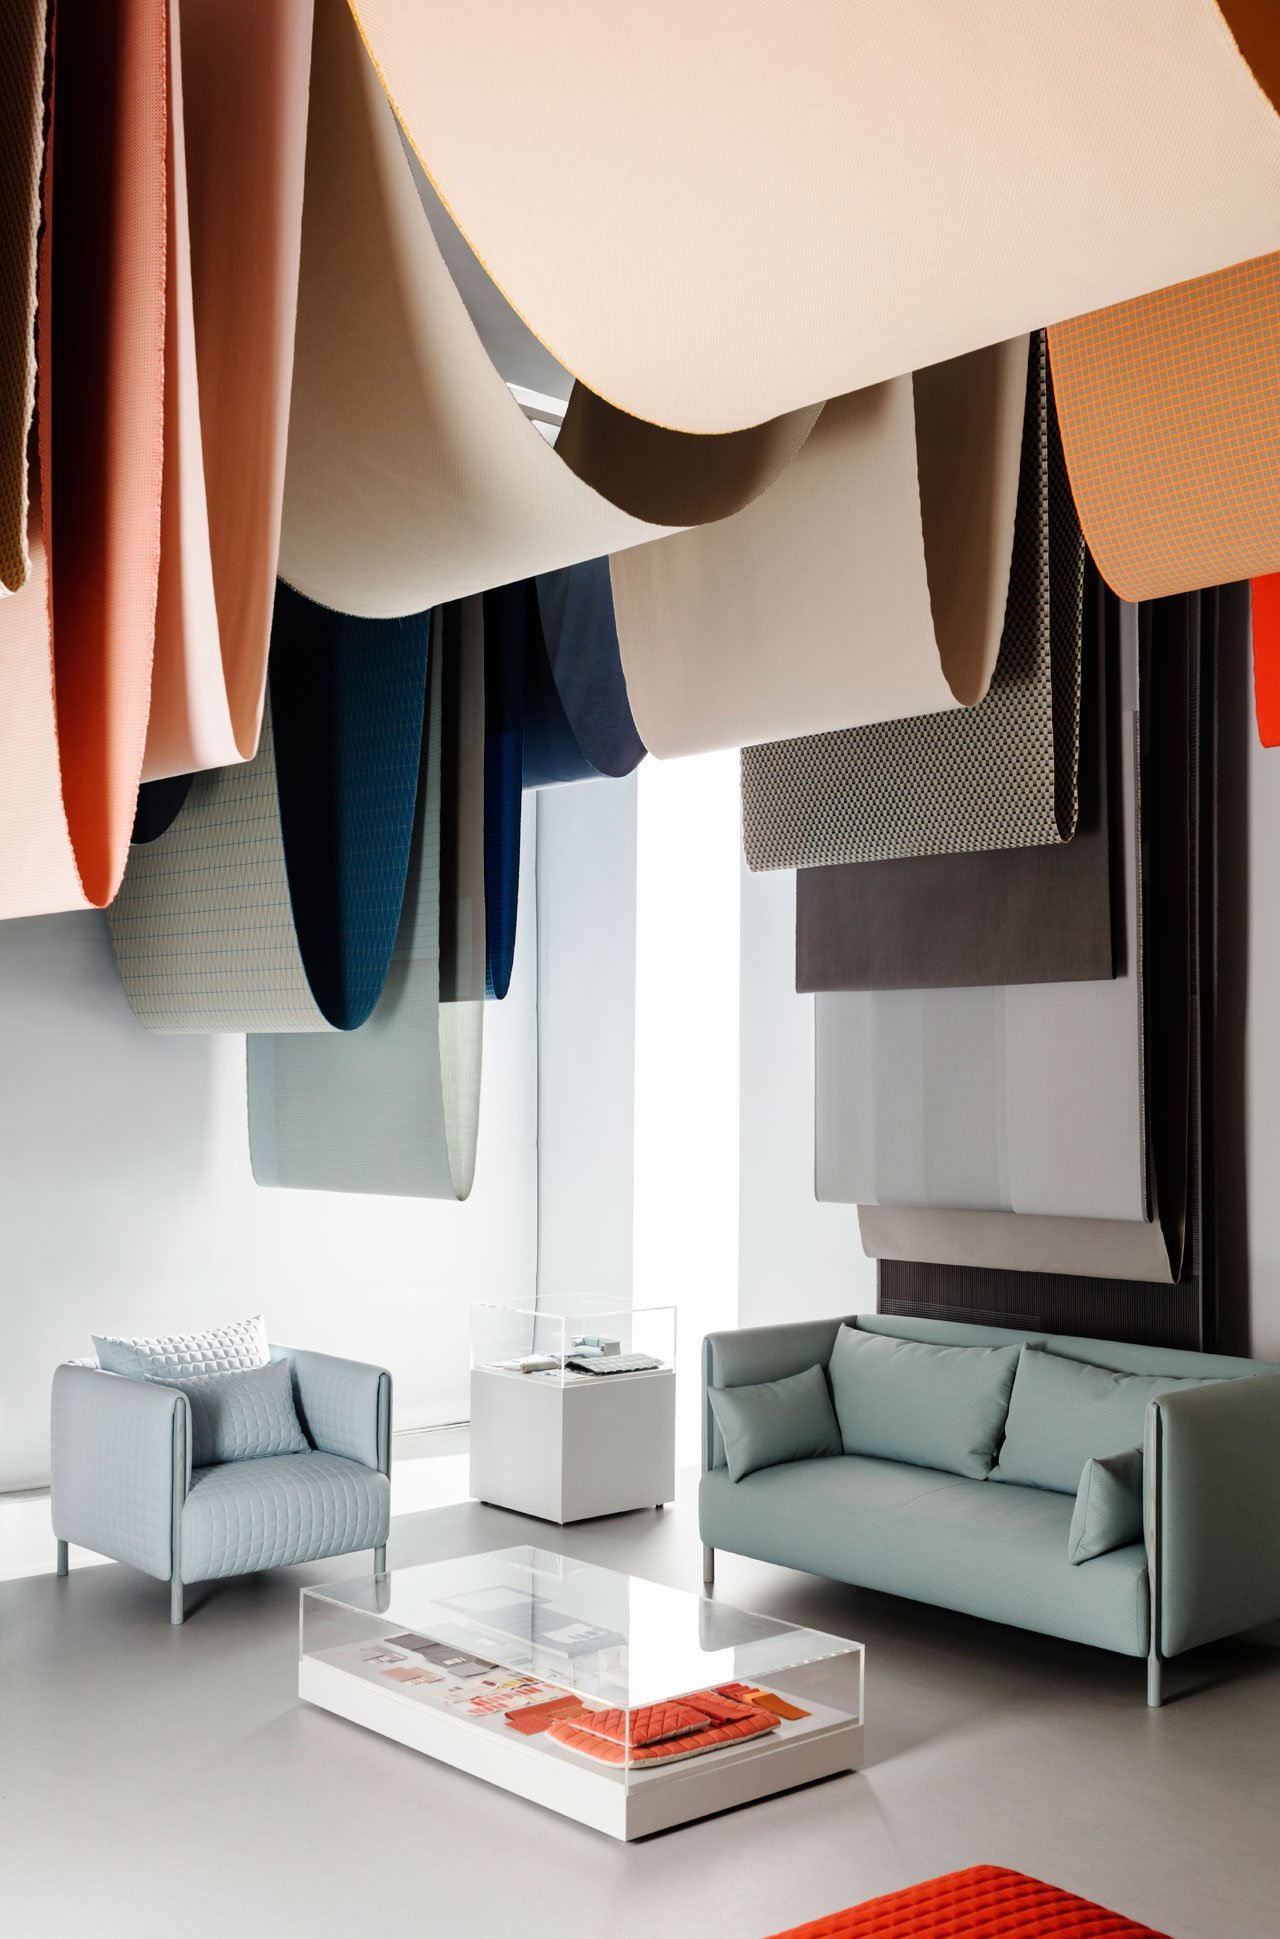 Chromatography exhibit by Stefan Scholten and Carole Baijings of Scholten & Baijings in the Herman Miller featuringMahatma textiles that were hanging from the ceiling, and beneath them elements of their new ColourForm Sofa Group for Herman Miller.Photo by Ben Anders.